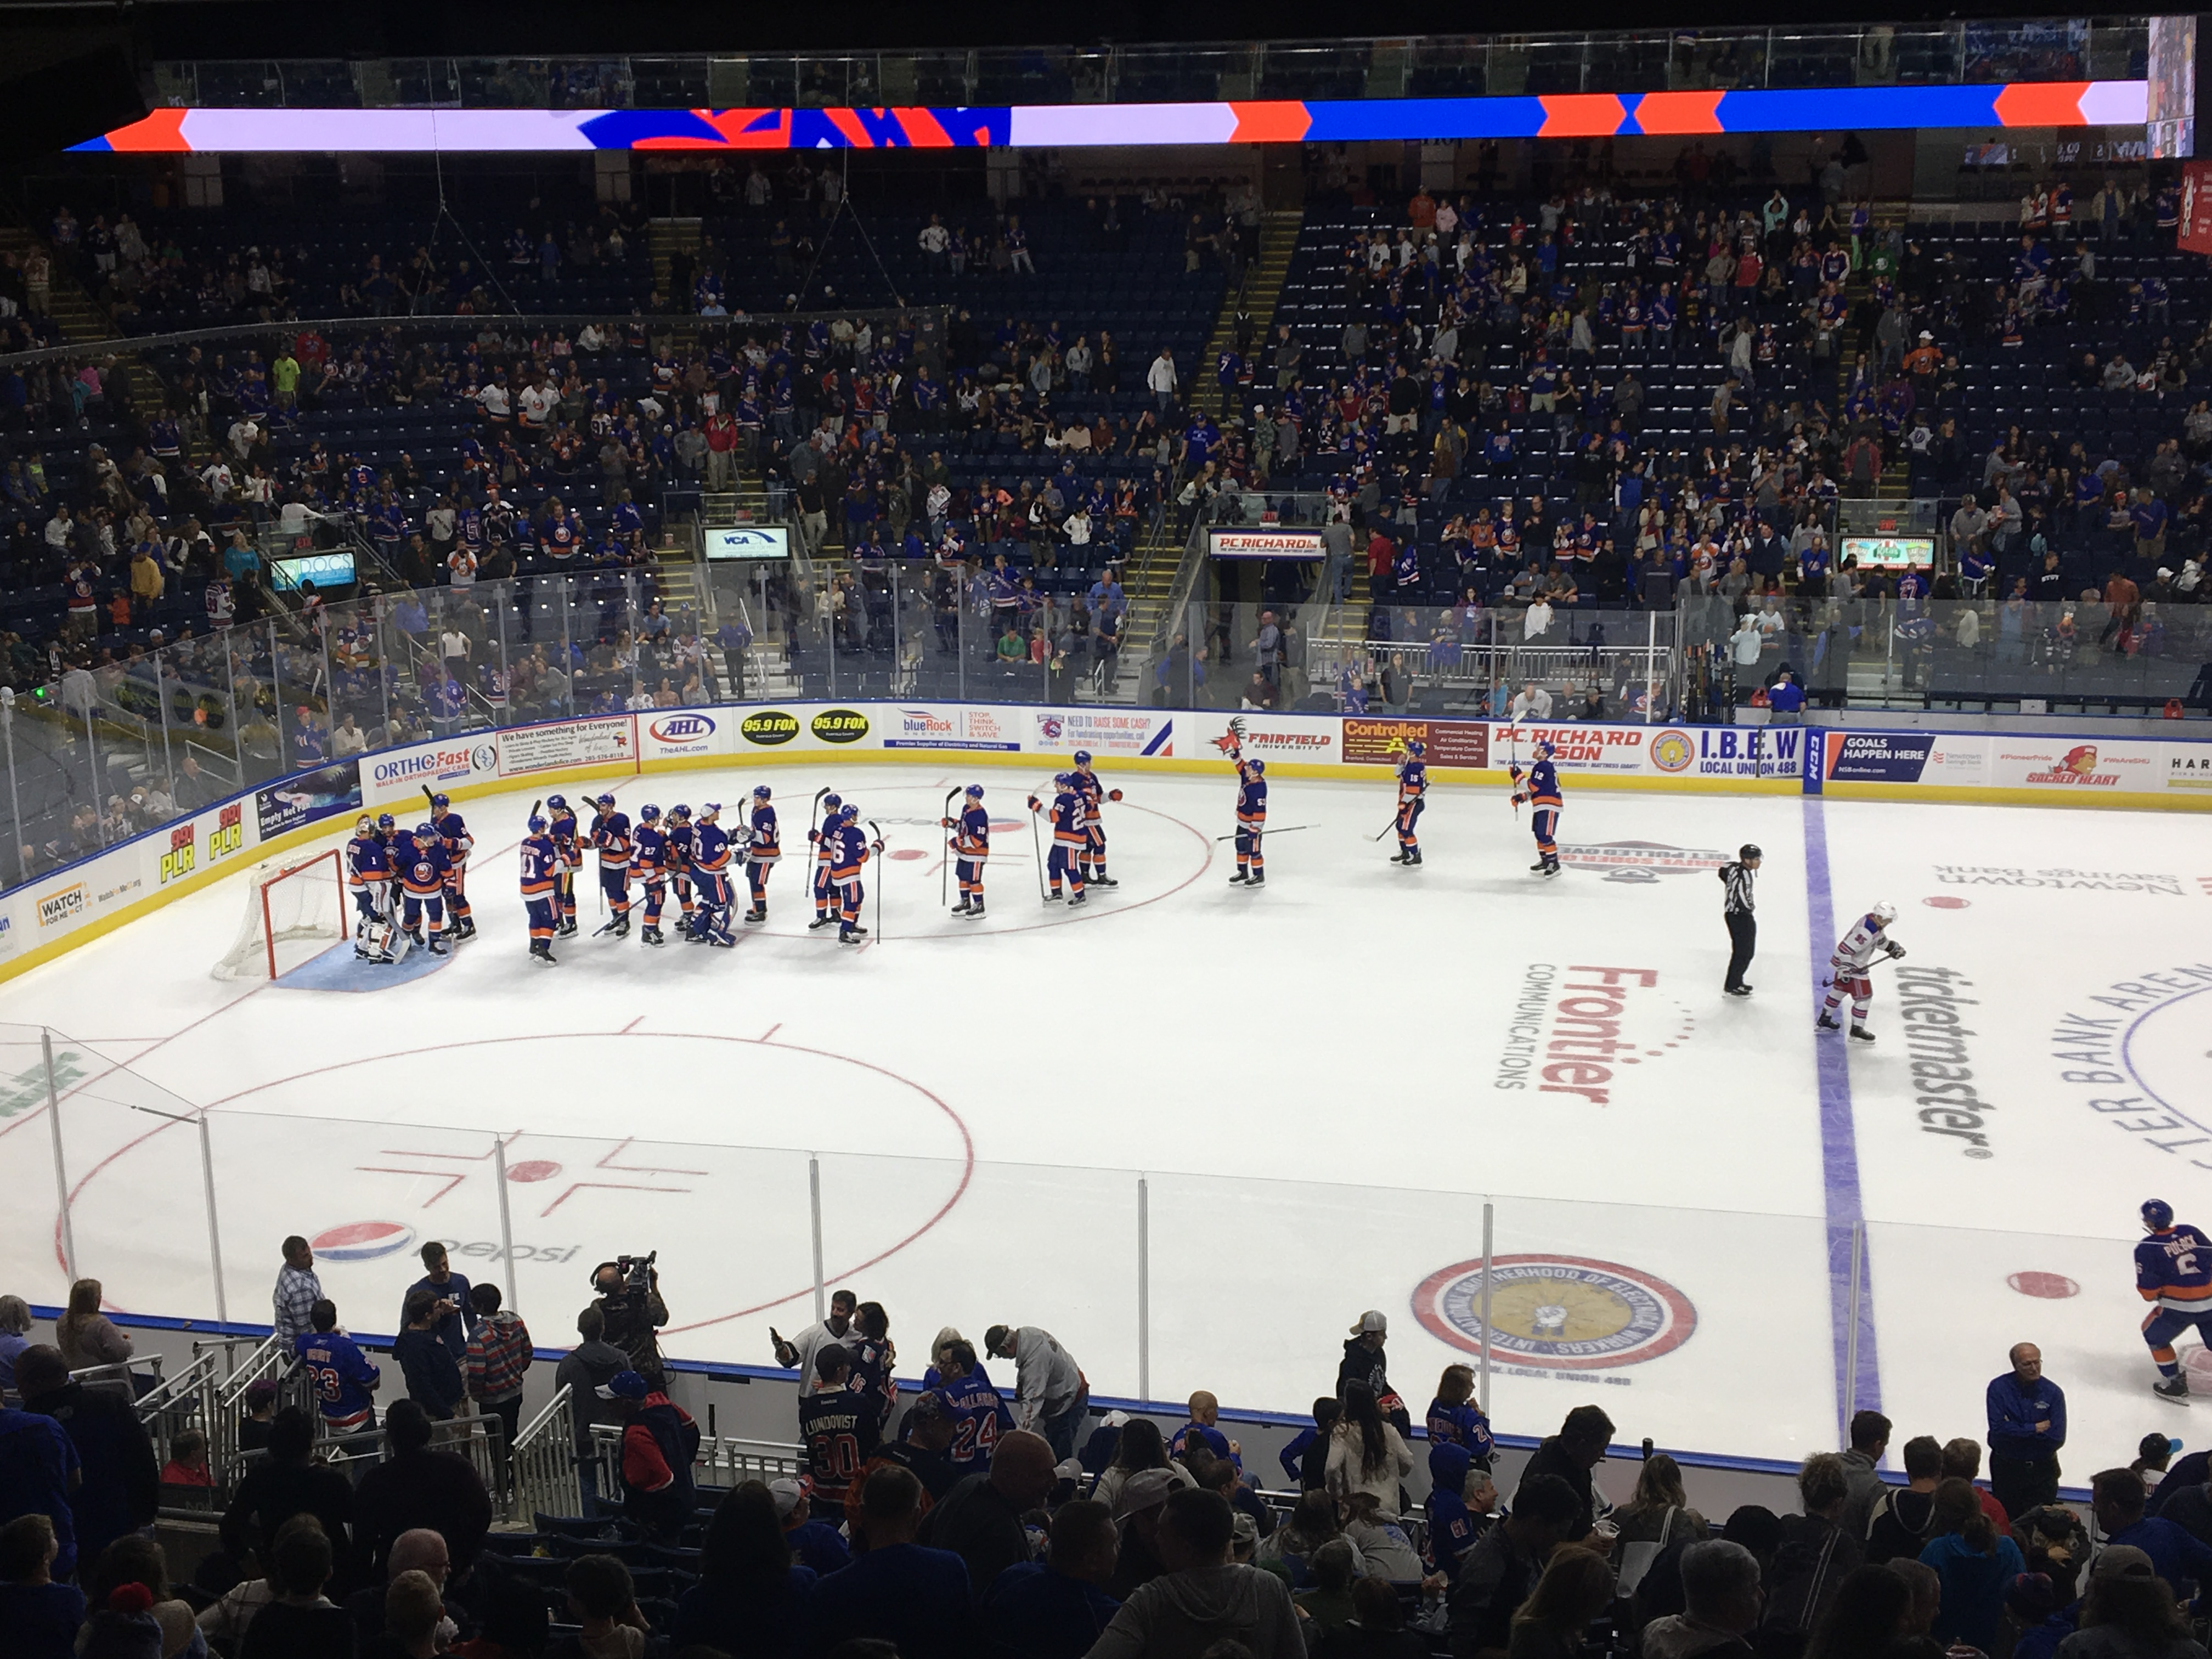 Isles Insights: A hockey game was played in Bridgeport